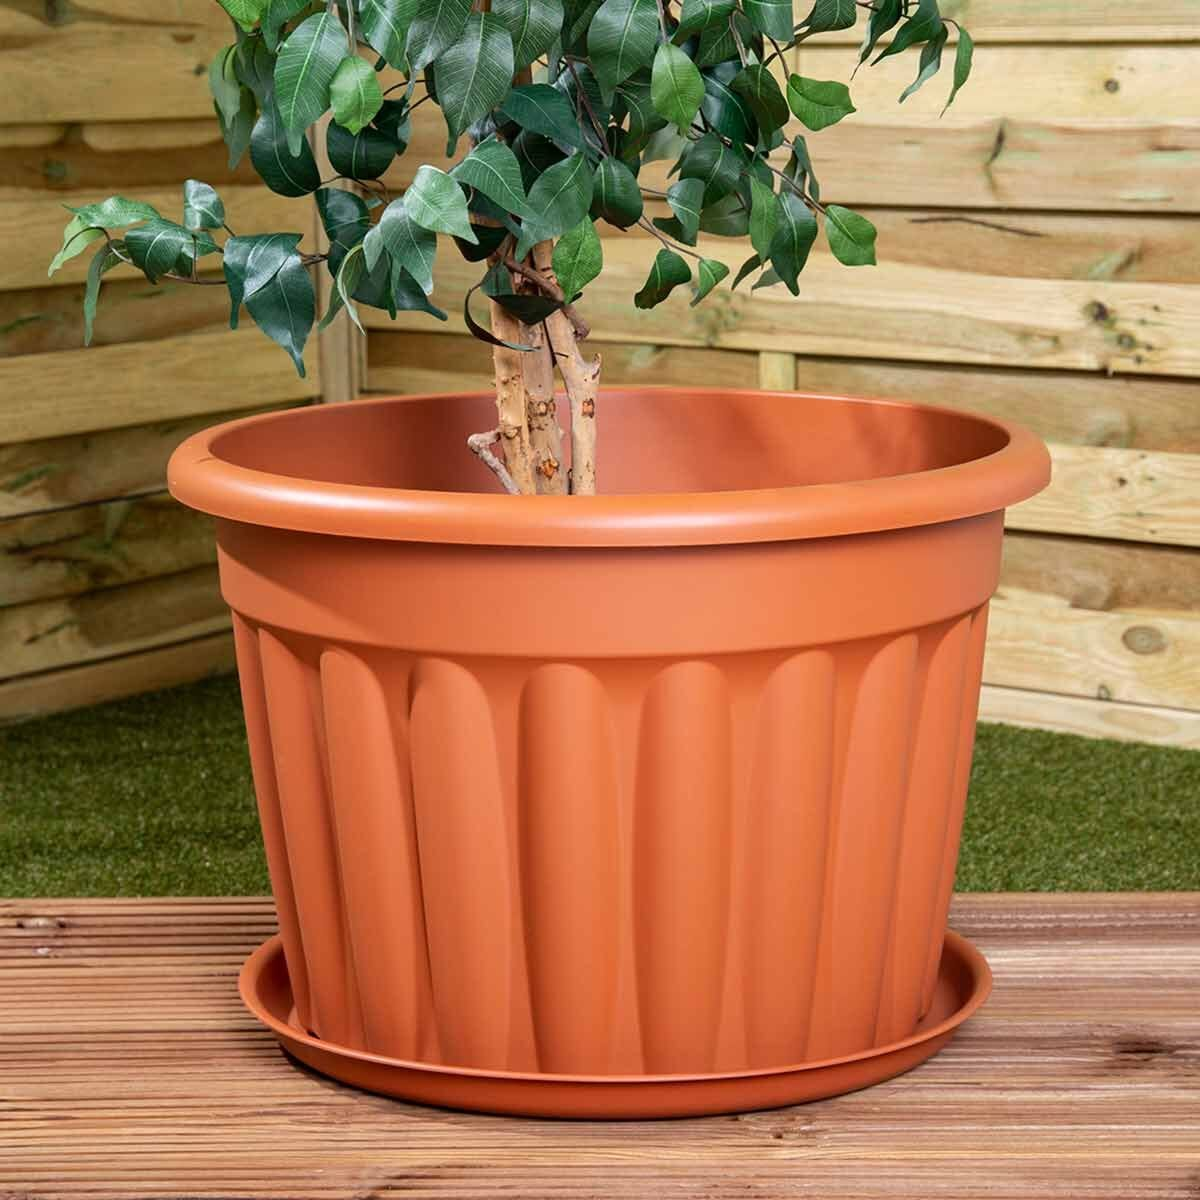 Wham Vista Traditional Round Planter with Tray 60cm Set of 5 Terracotta